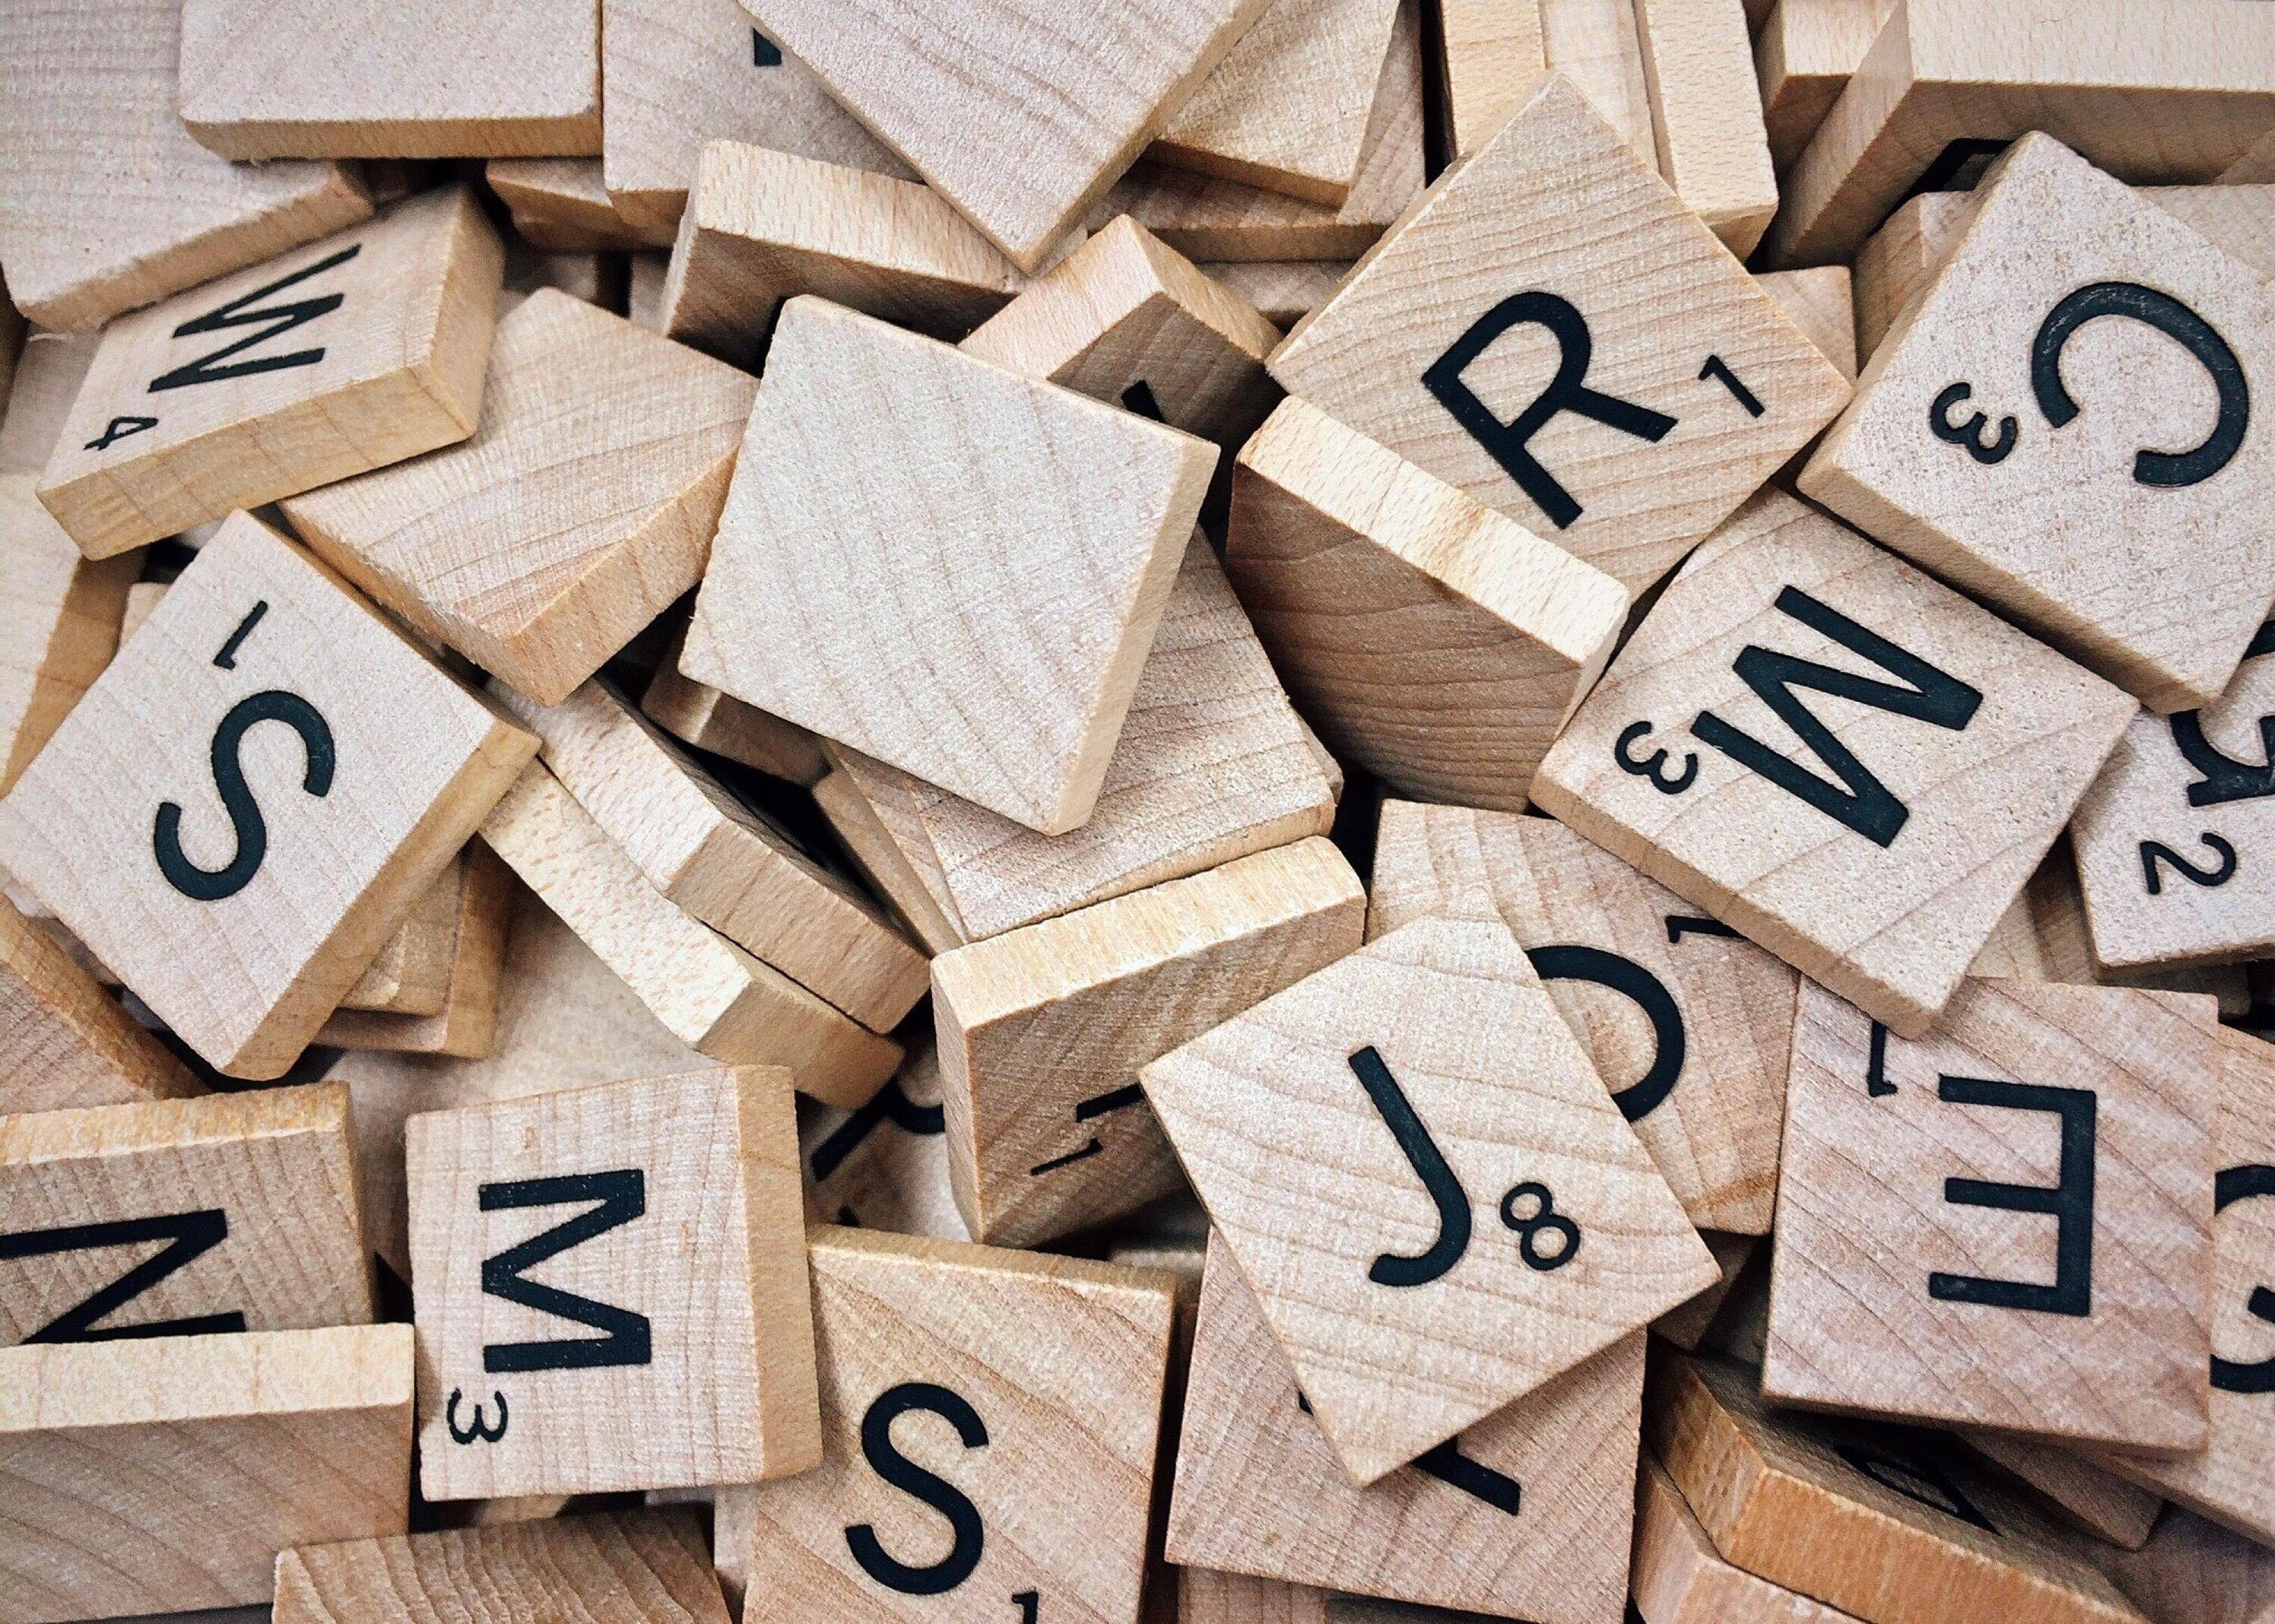 Scrabble tiles in a pile